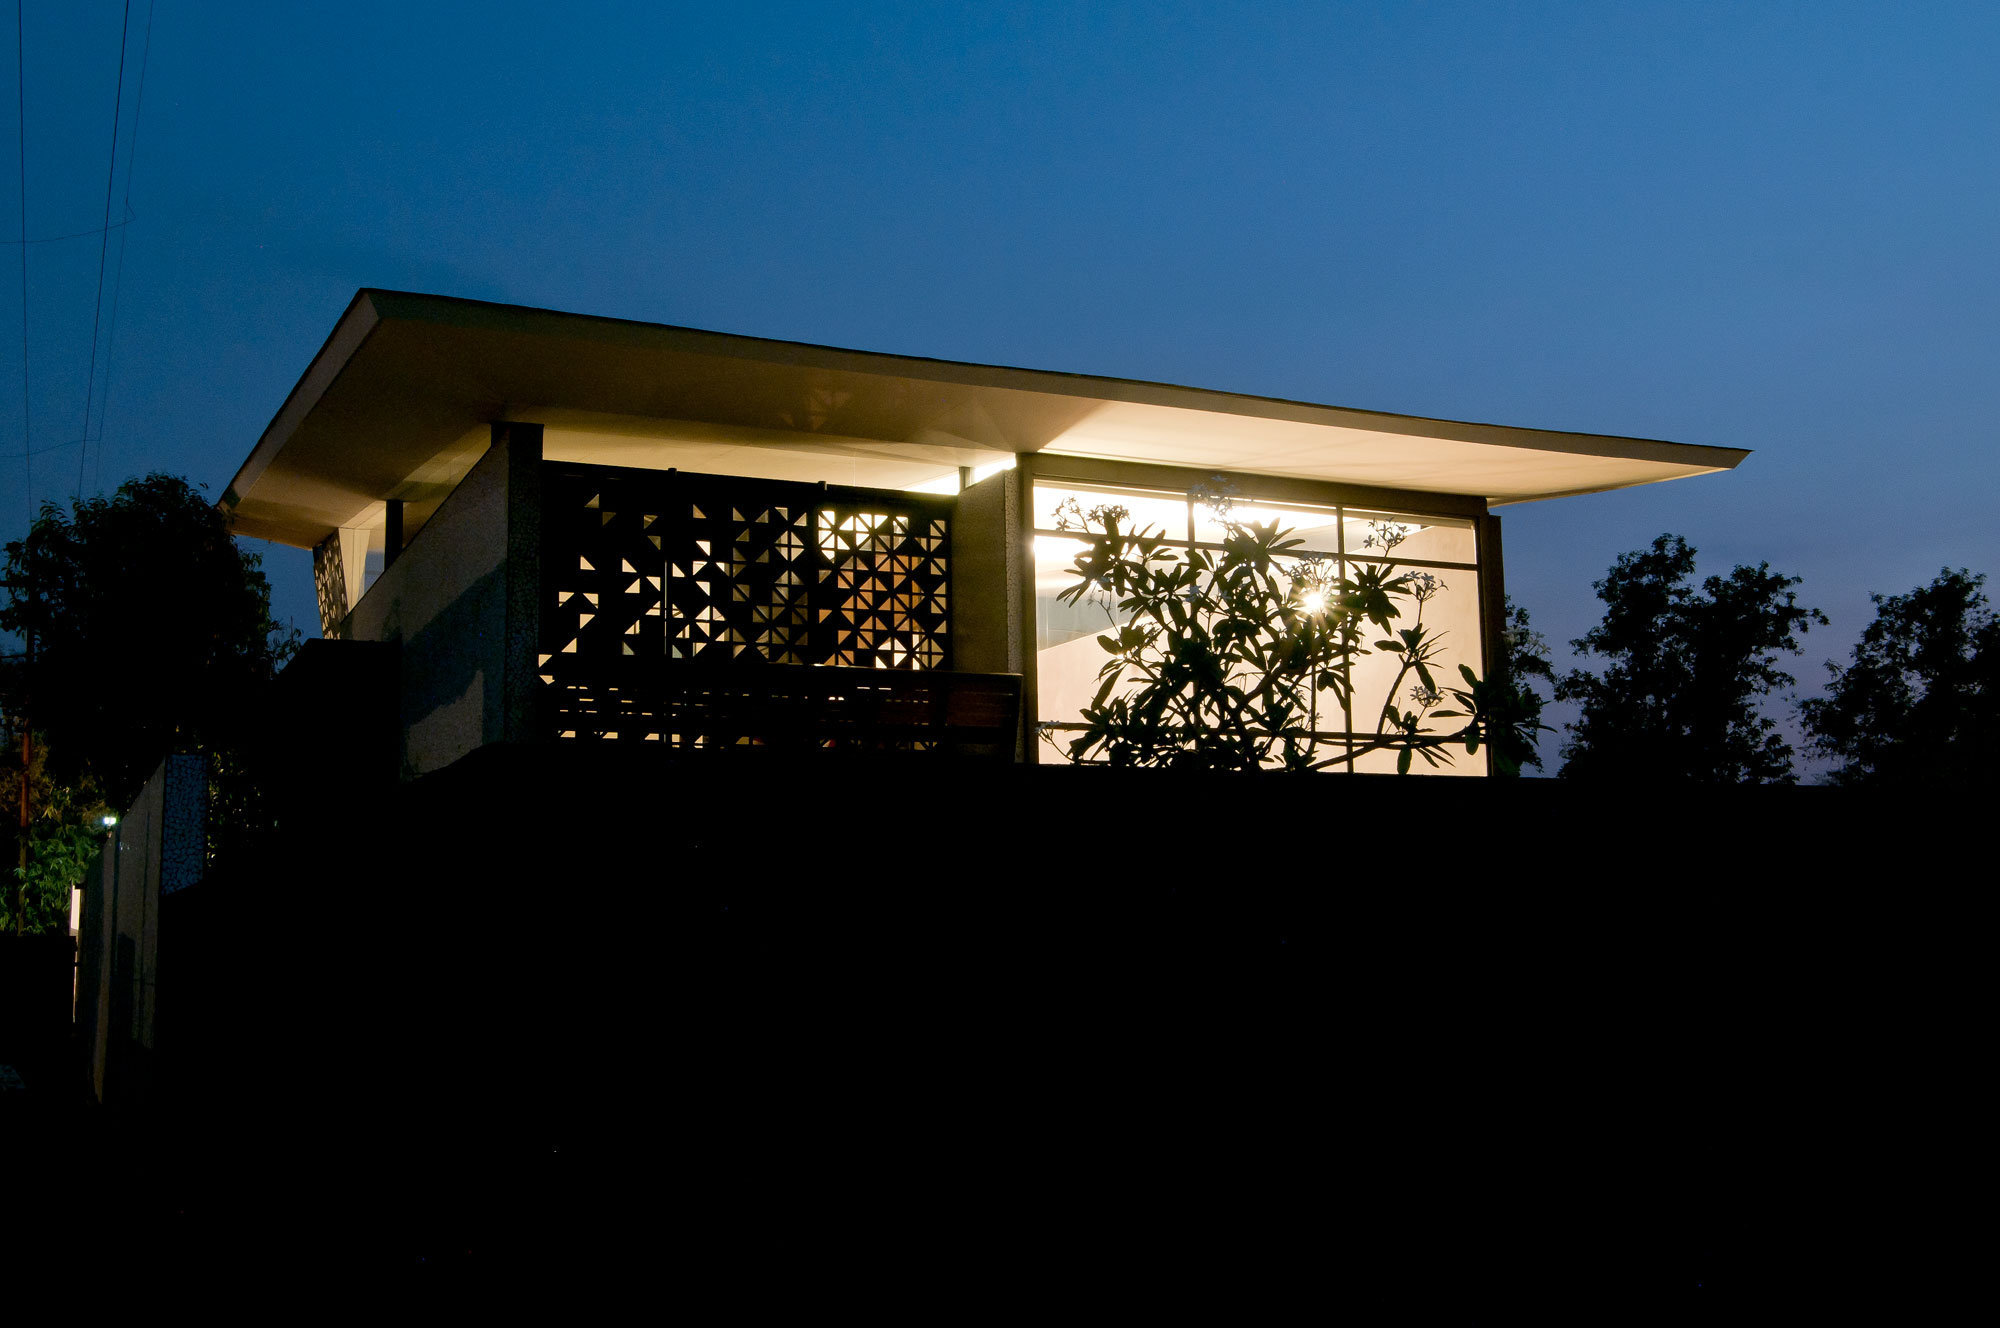 """MEHR"" - Bungalow in Karjat / Krishnan Parvez Architects / www.kpa.in"